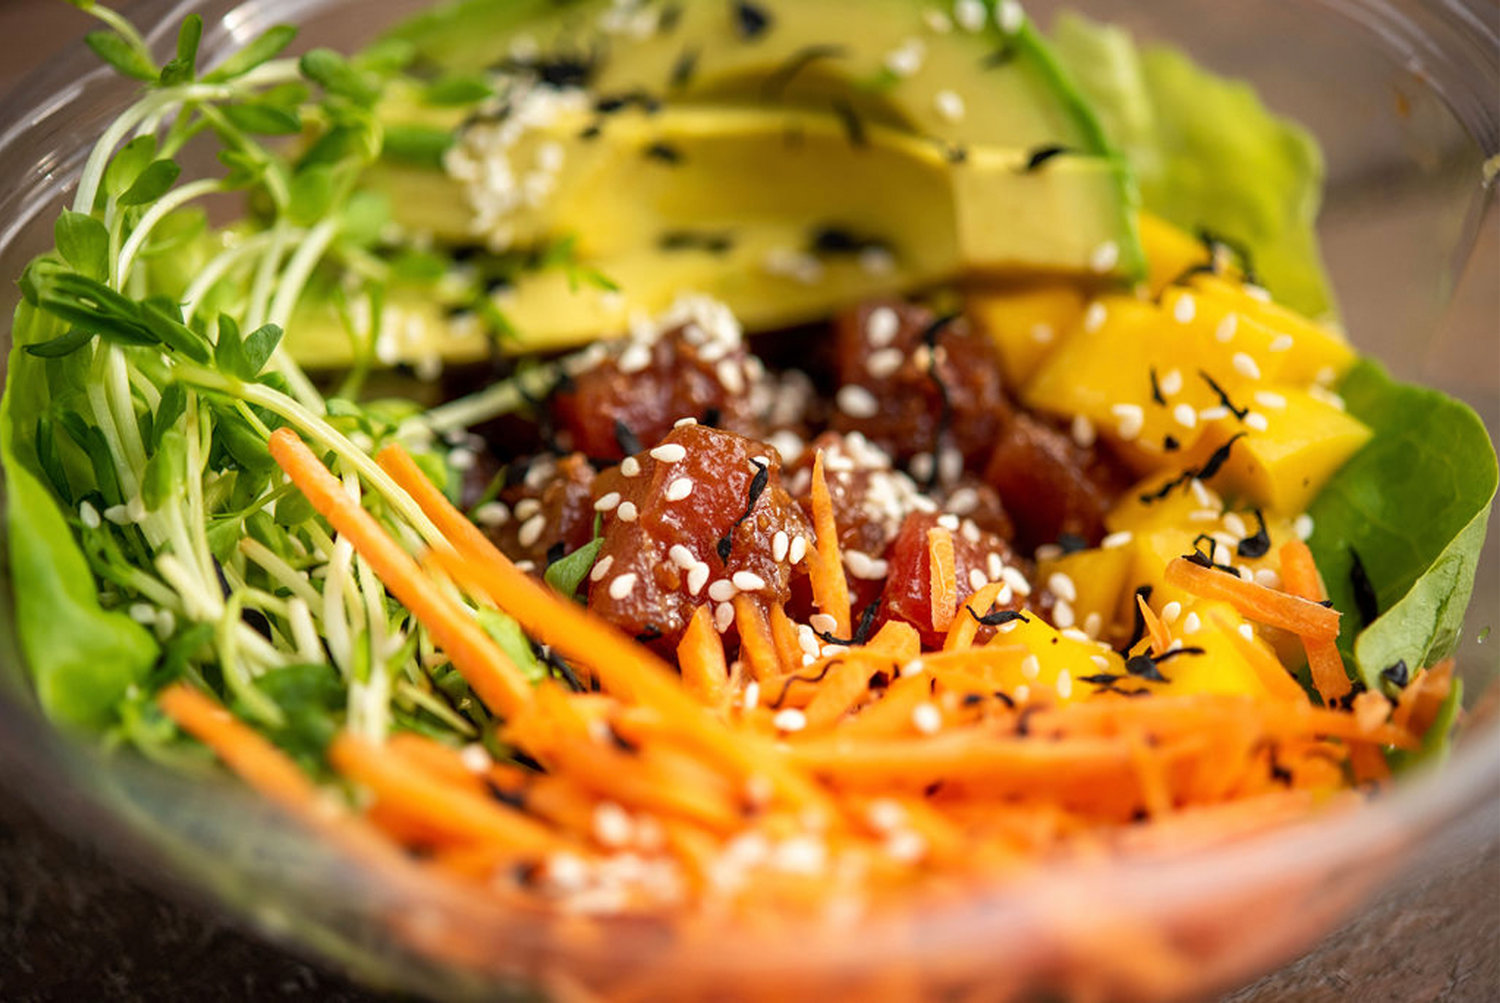 A Mango Avocado Bowl at Flat Waves features ahi tuna